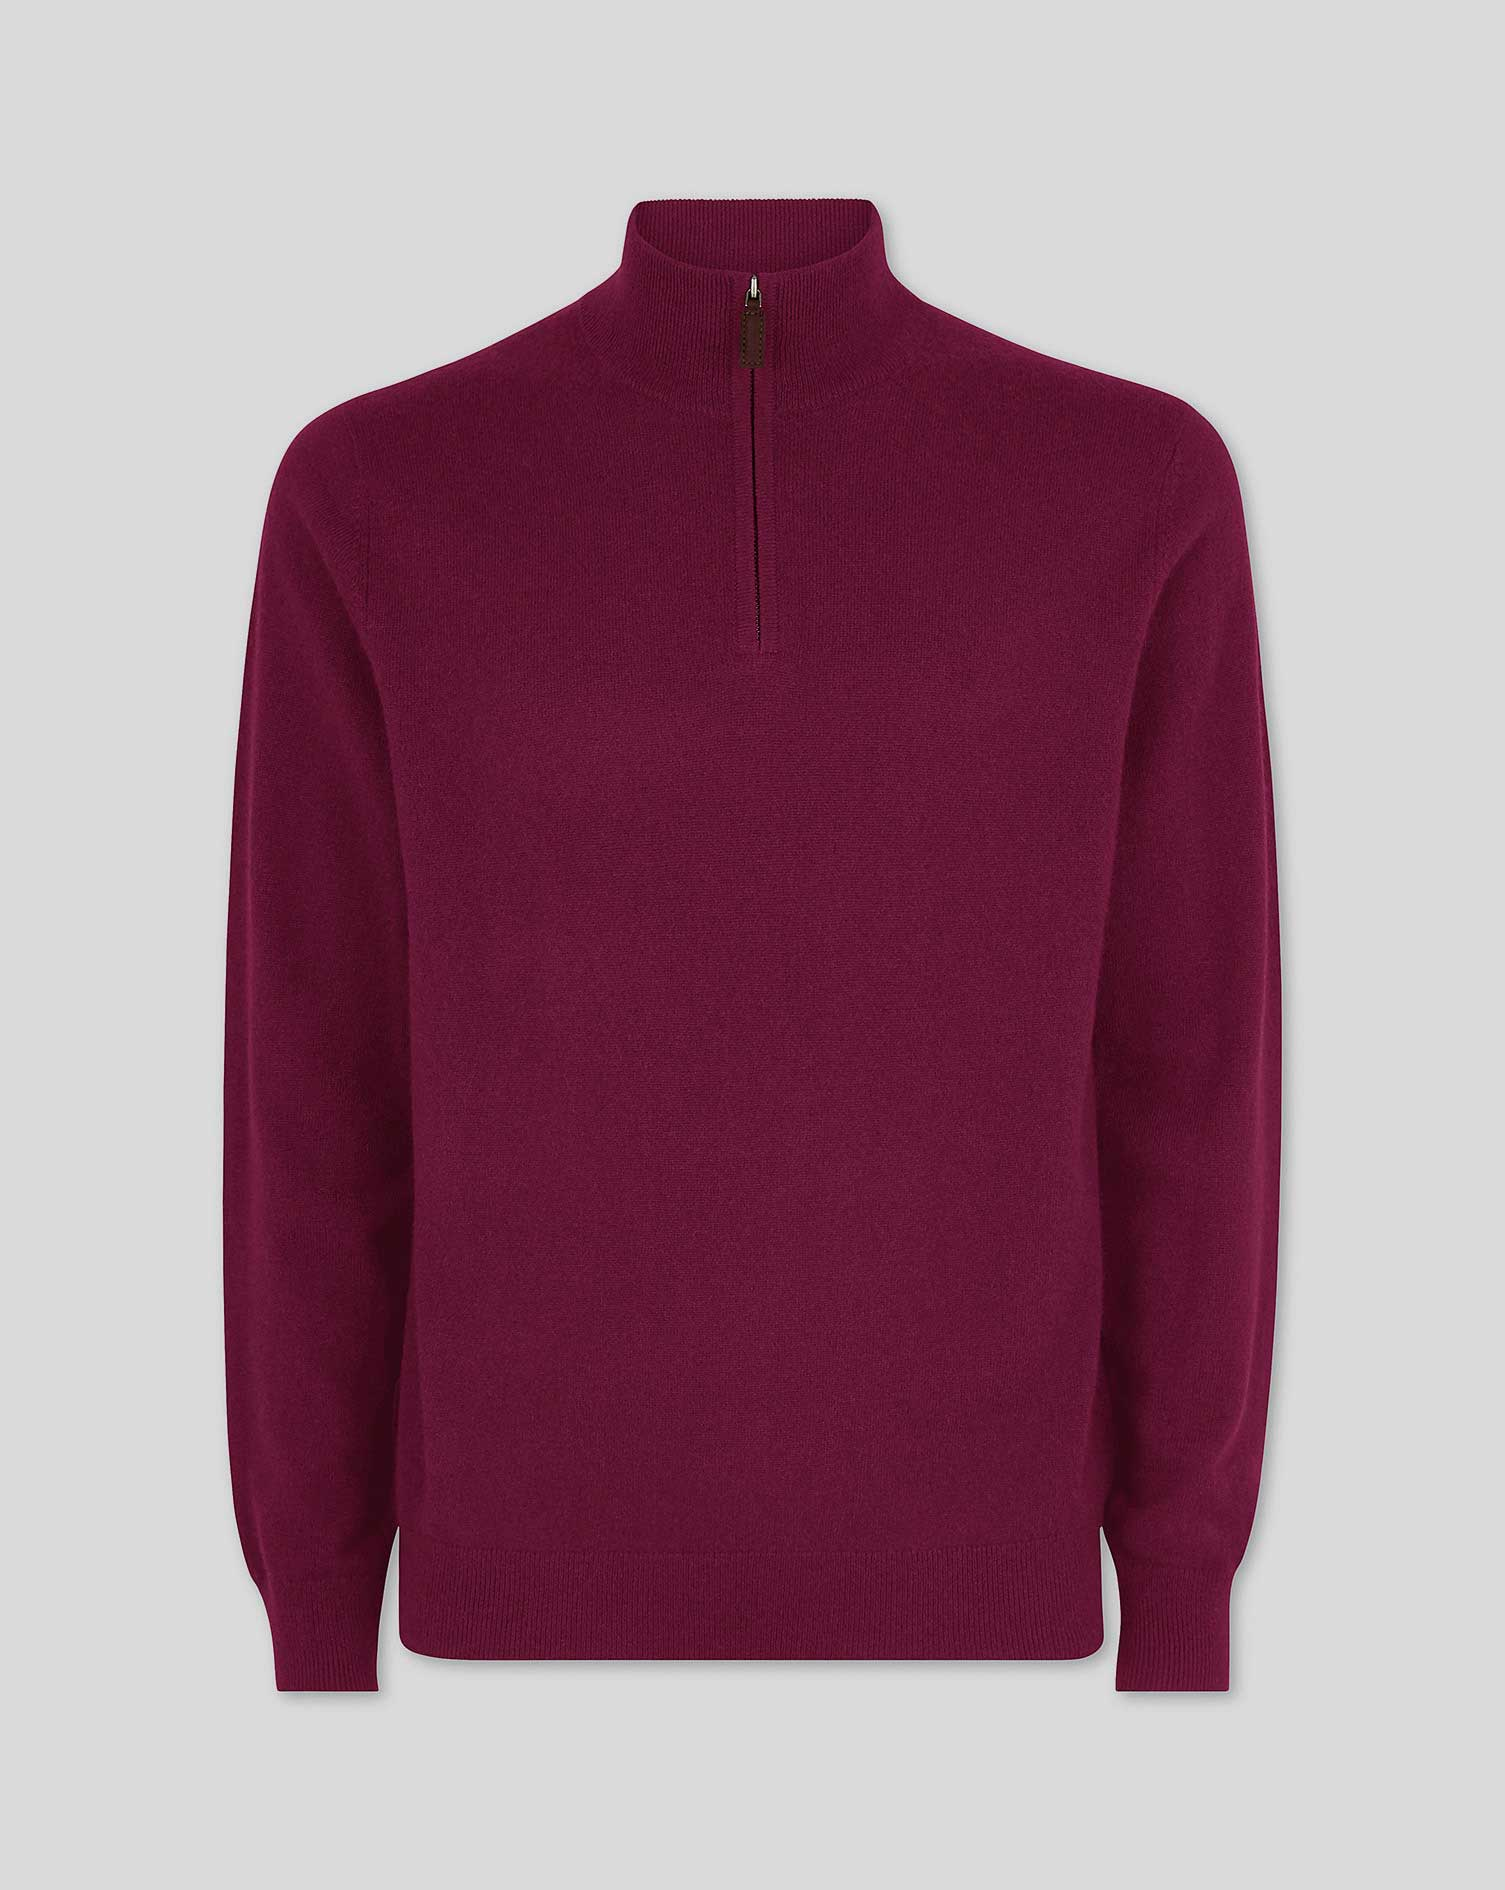 Image of Charles Tyrwhitt Berry Cashmere Zip Neck Jumper Size Small by Charles Tyrwhitt